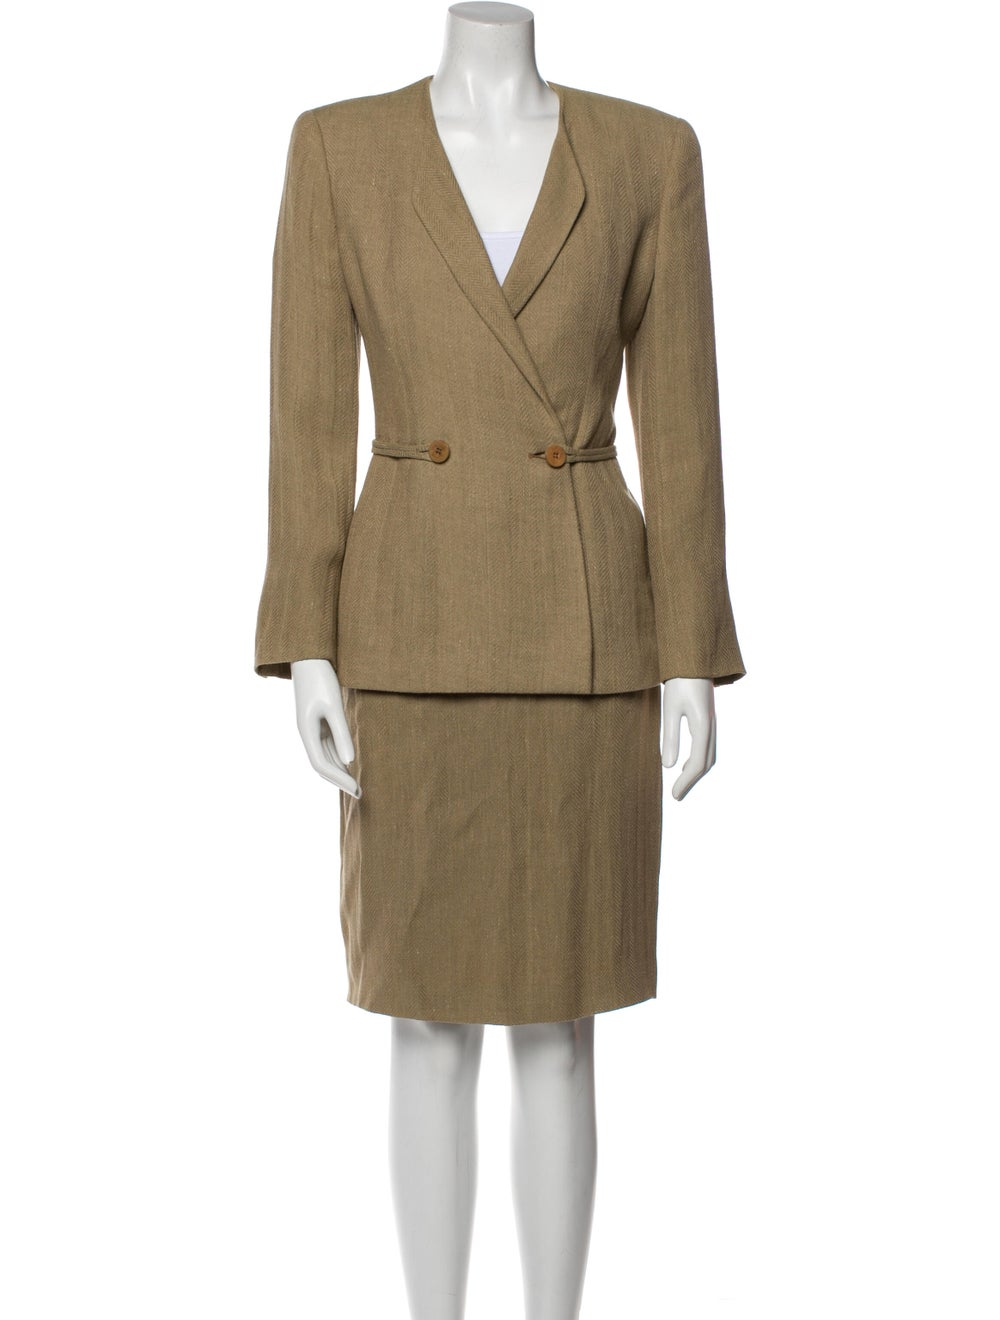 Giorgio Armani Linen Patterned Skirt Suit - image 1